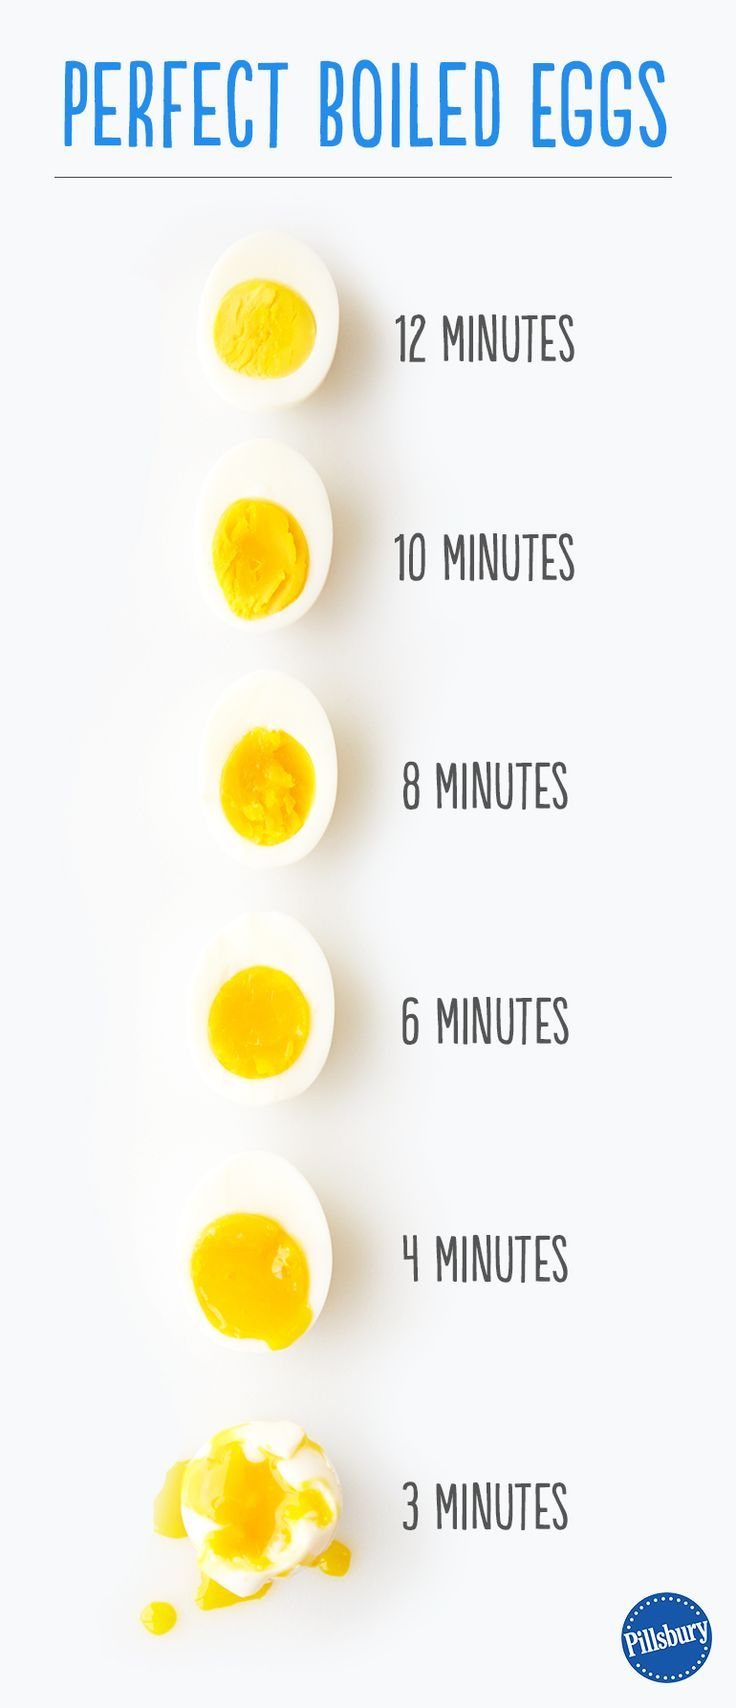 Whether you love hard boiled eggs or soft boiled eggs, Easter eggs or everyday eggs, egg salad or deviled eggs — anyone can master the art of the perfect boiled egg. Wondering how long to boil eggs? Pillsbury's handy timing chart and no-fail guide are just what you need!